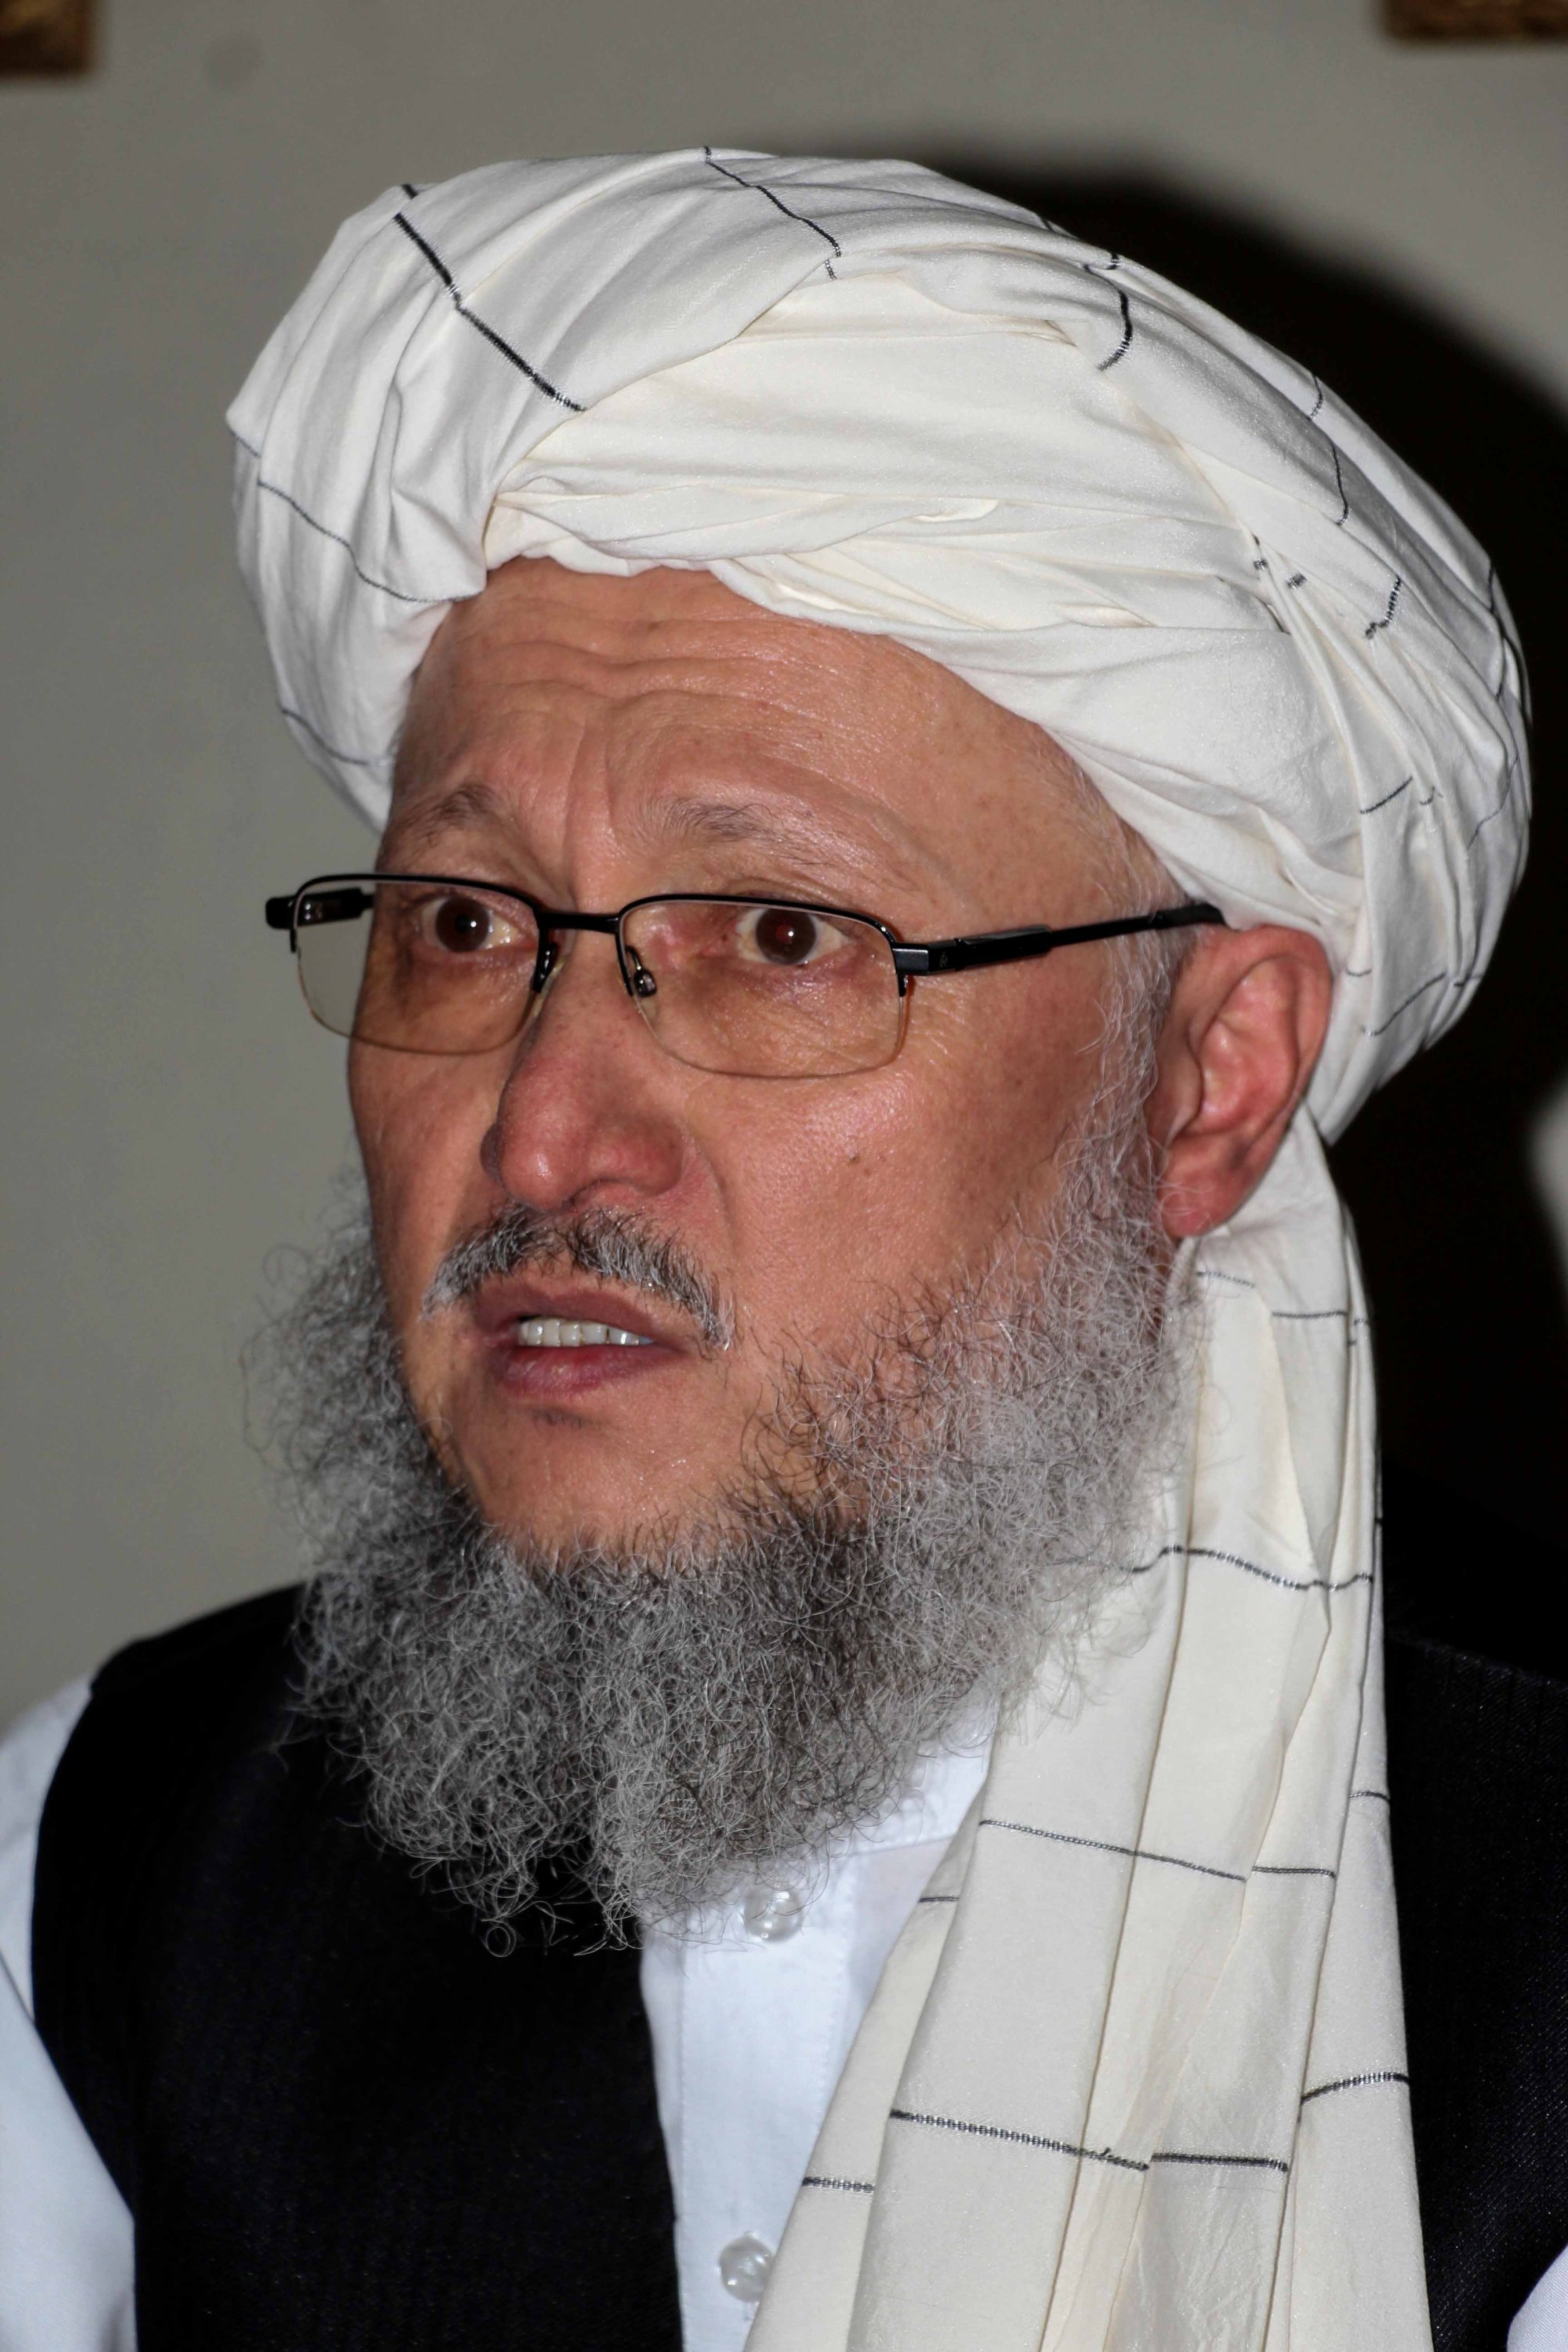 The newly formed Taliban-led interim government's Second Deputy Prime Minister Abdul Salam Hanafi speaks to journalists in Kandahar, Afghanistan, Aug. 17, 2021. (EPA Photo)